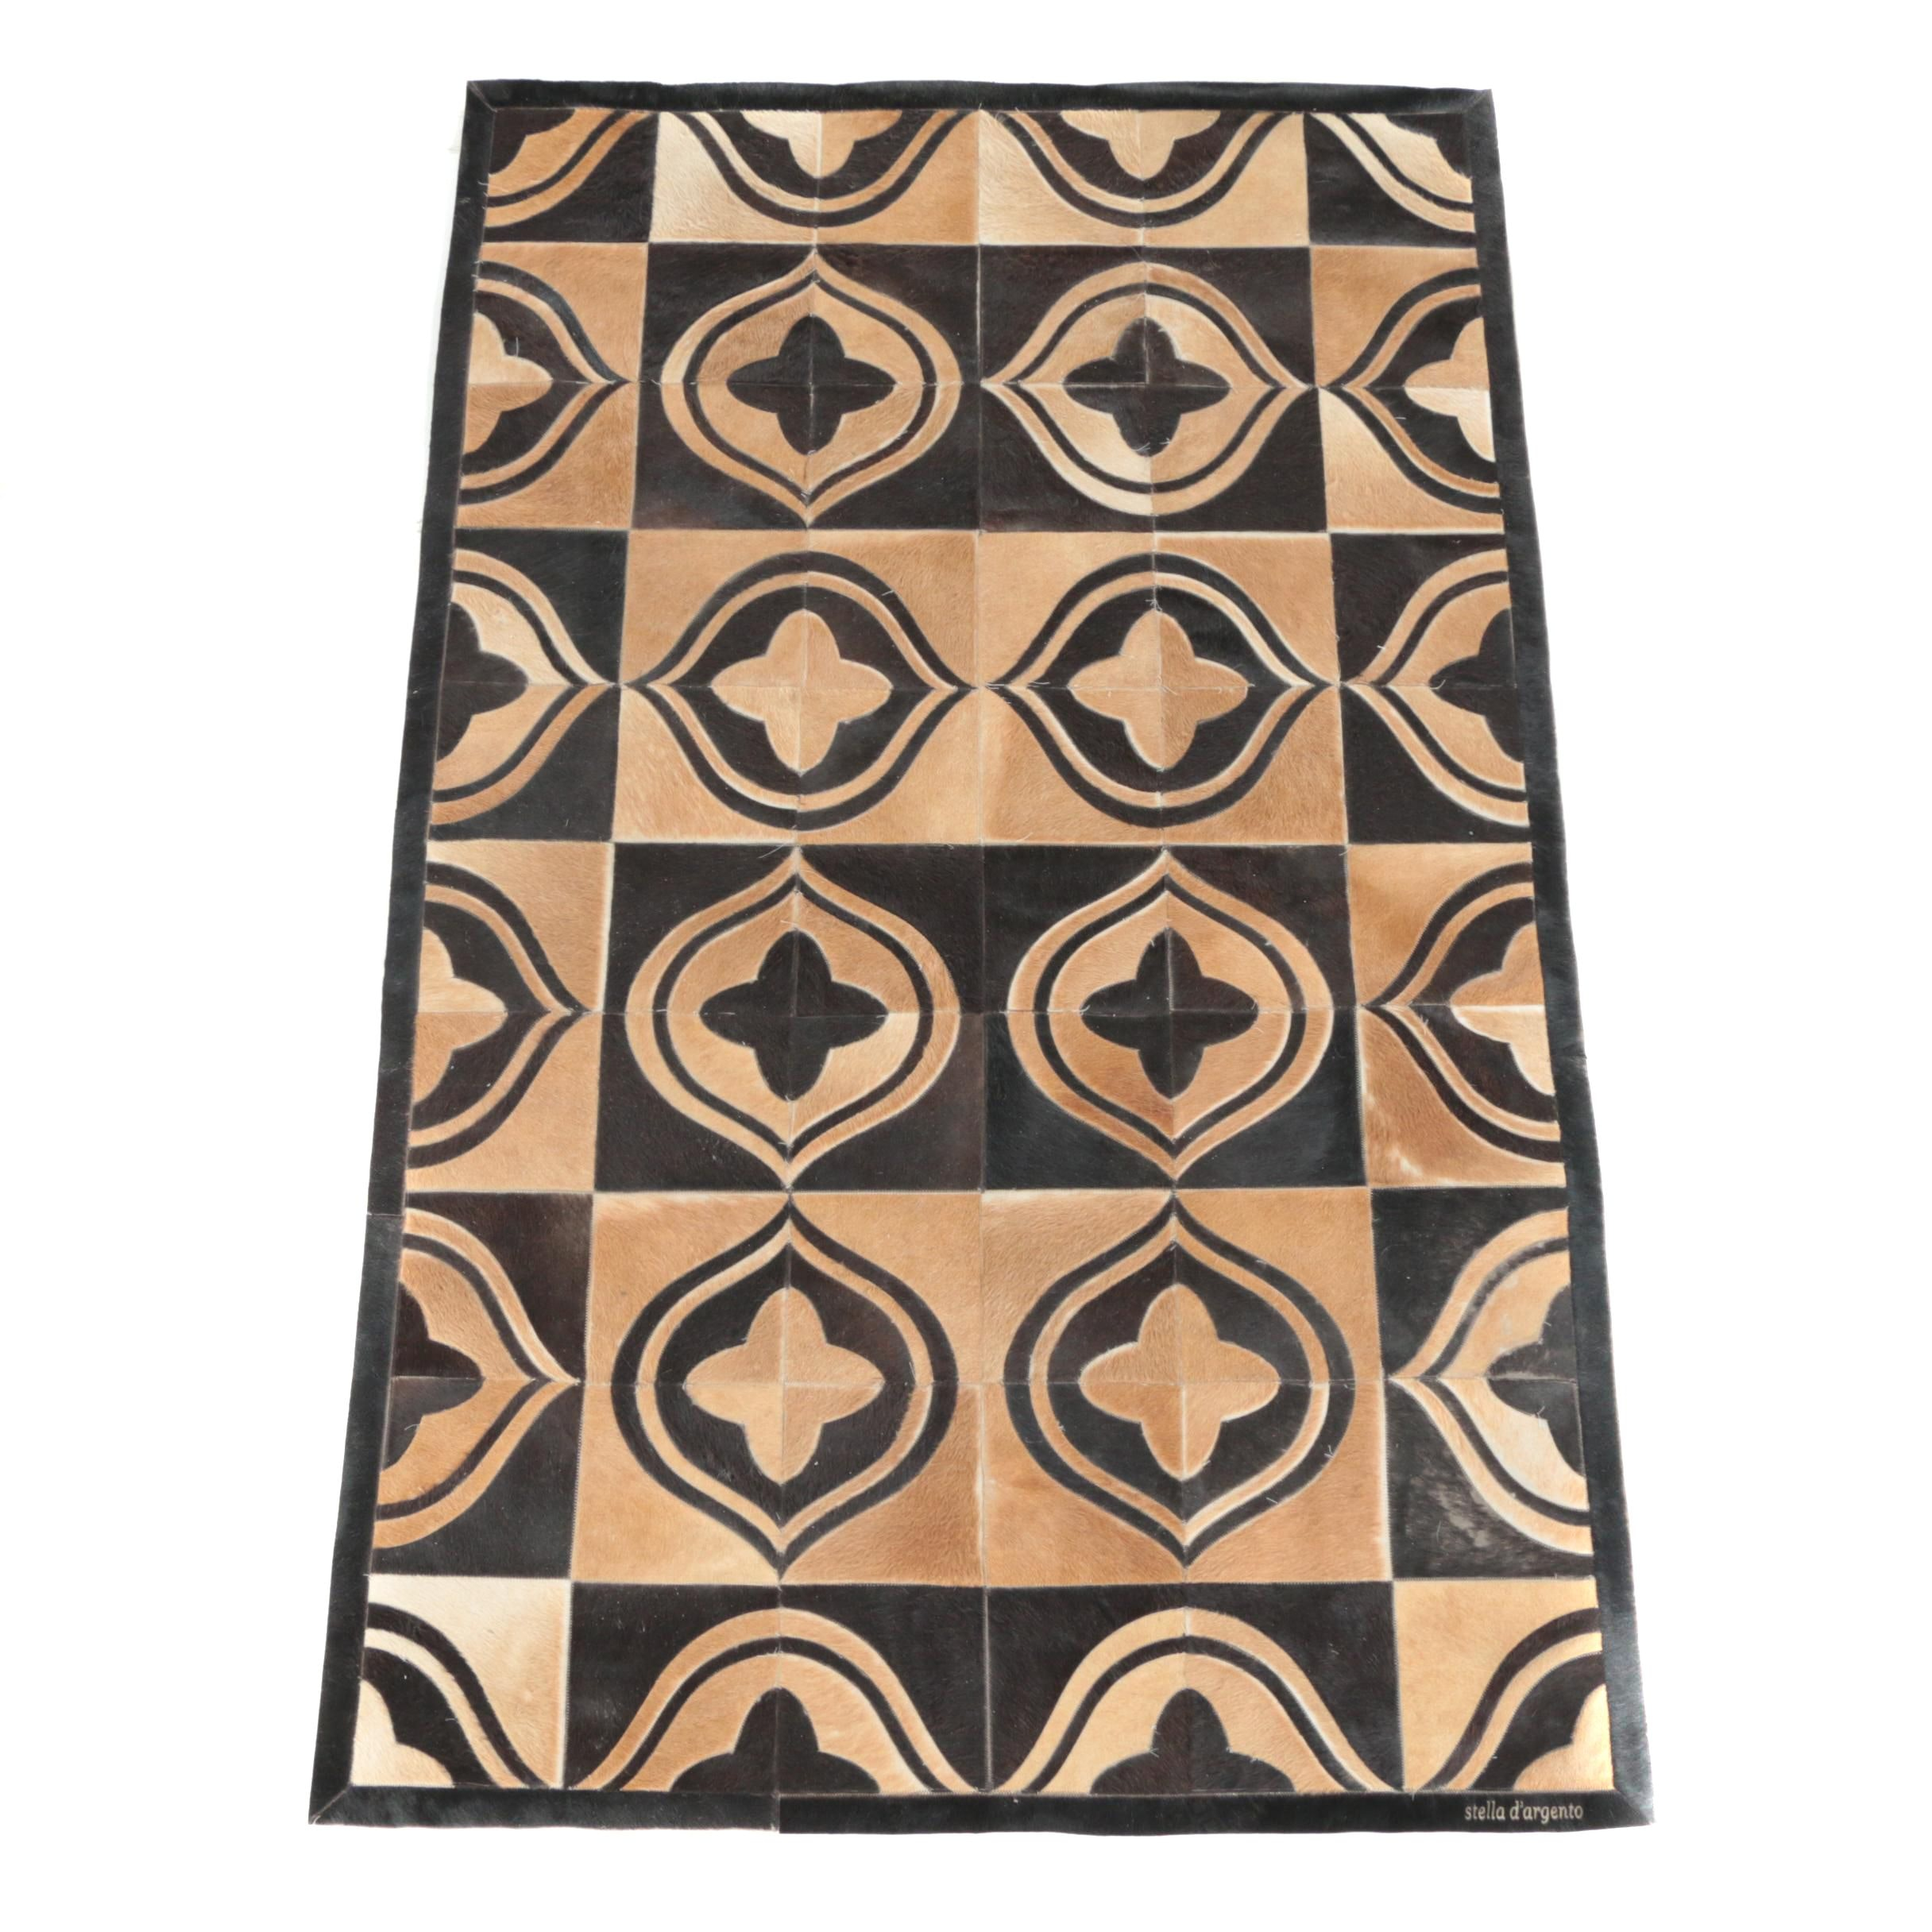 Handmade Argentinian Patchwork Cowhide Area Rug by Stella D'Argento